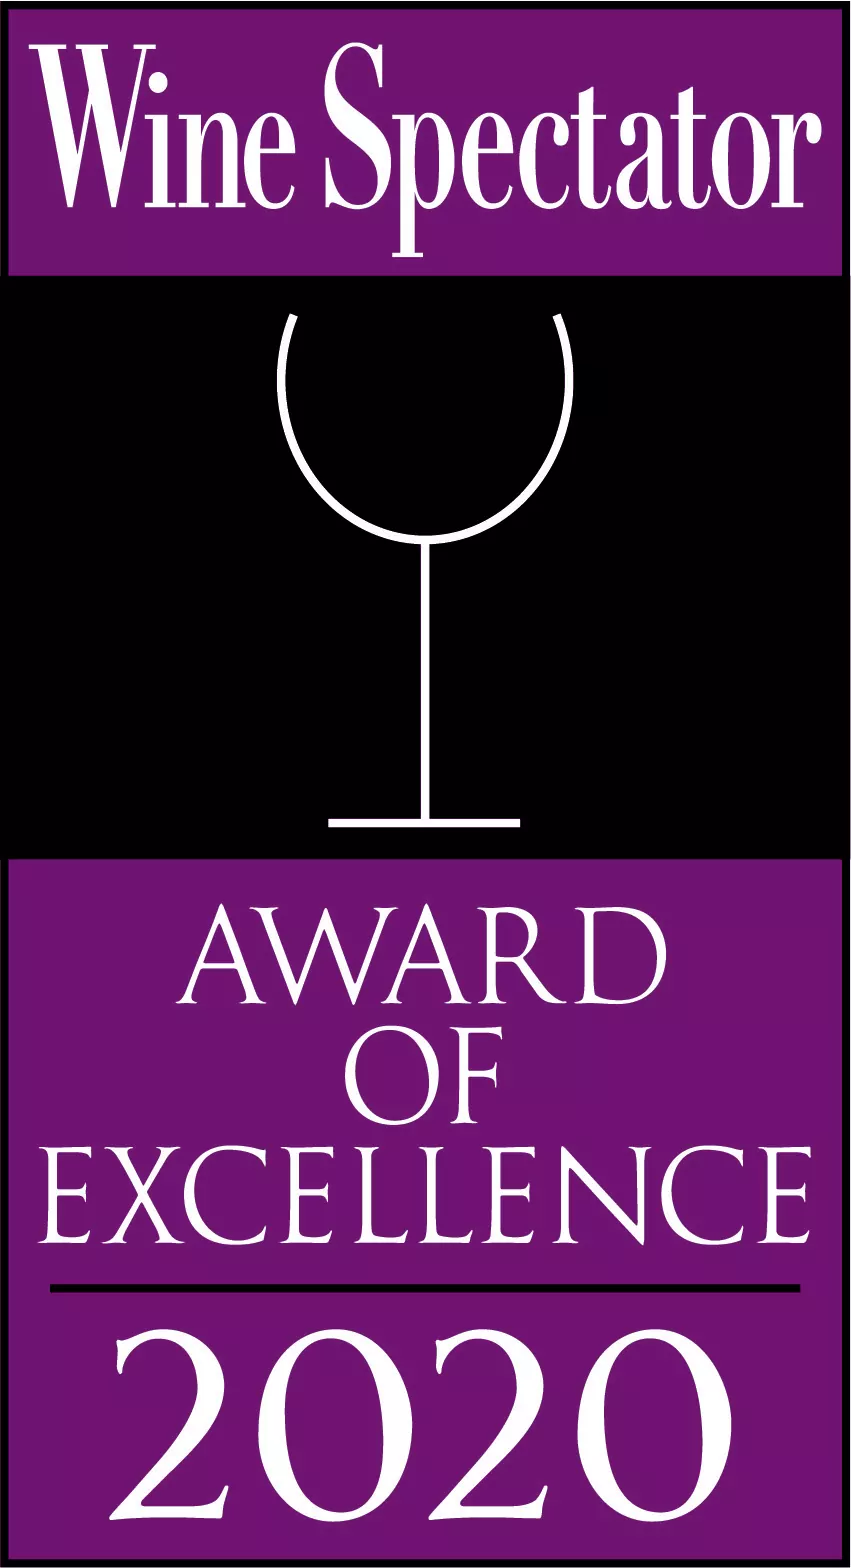 WineSpectator Award 2020